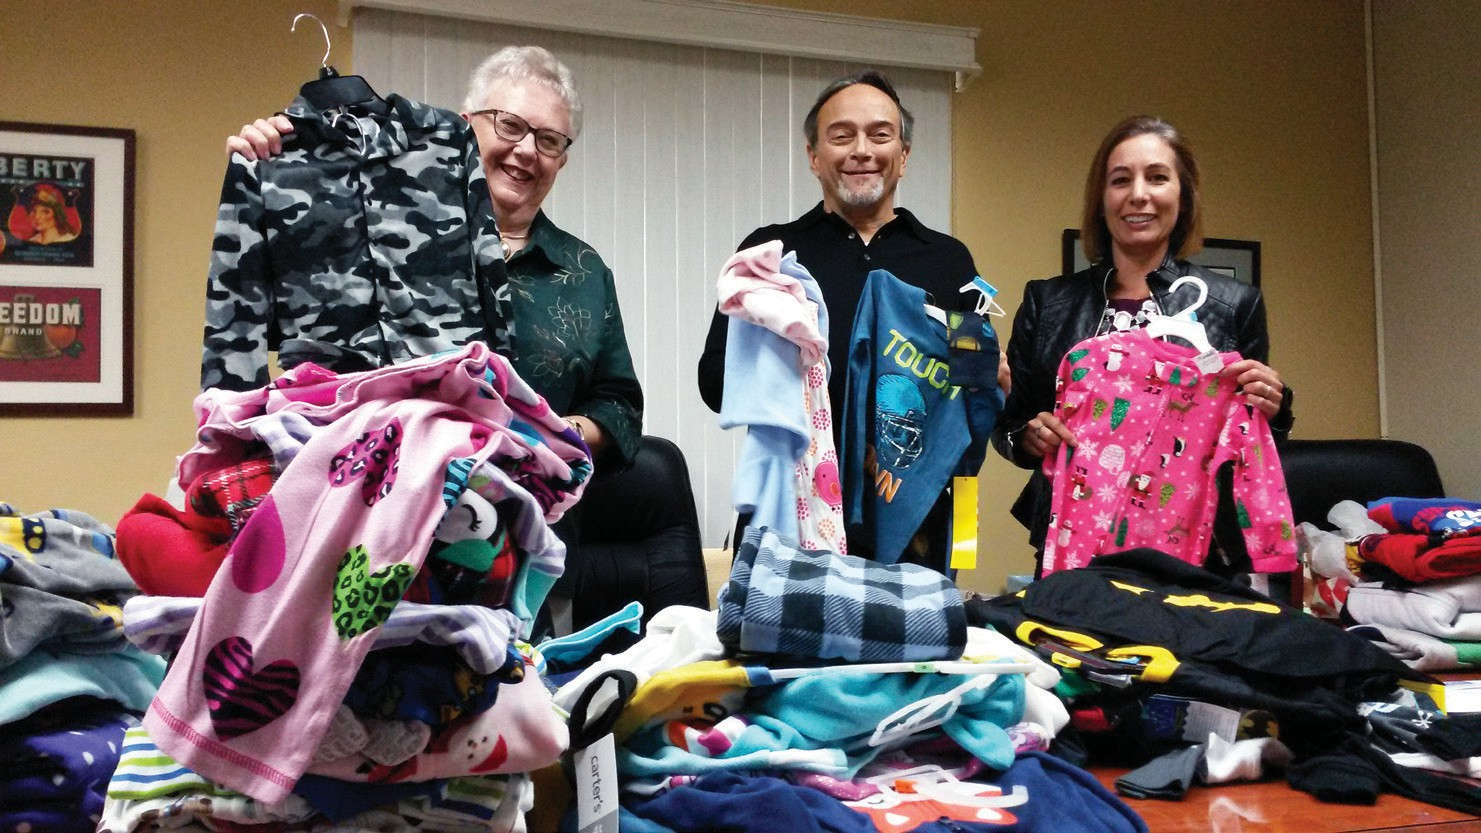 Kitty Aeling, Kevin Svetich and Rorie Johnston of the Escondido Chamber of Commerce are shown sorting through the PJ's.